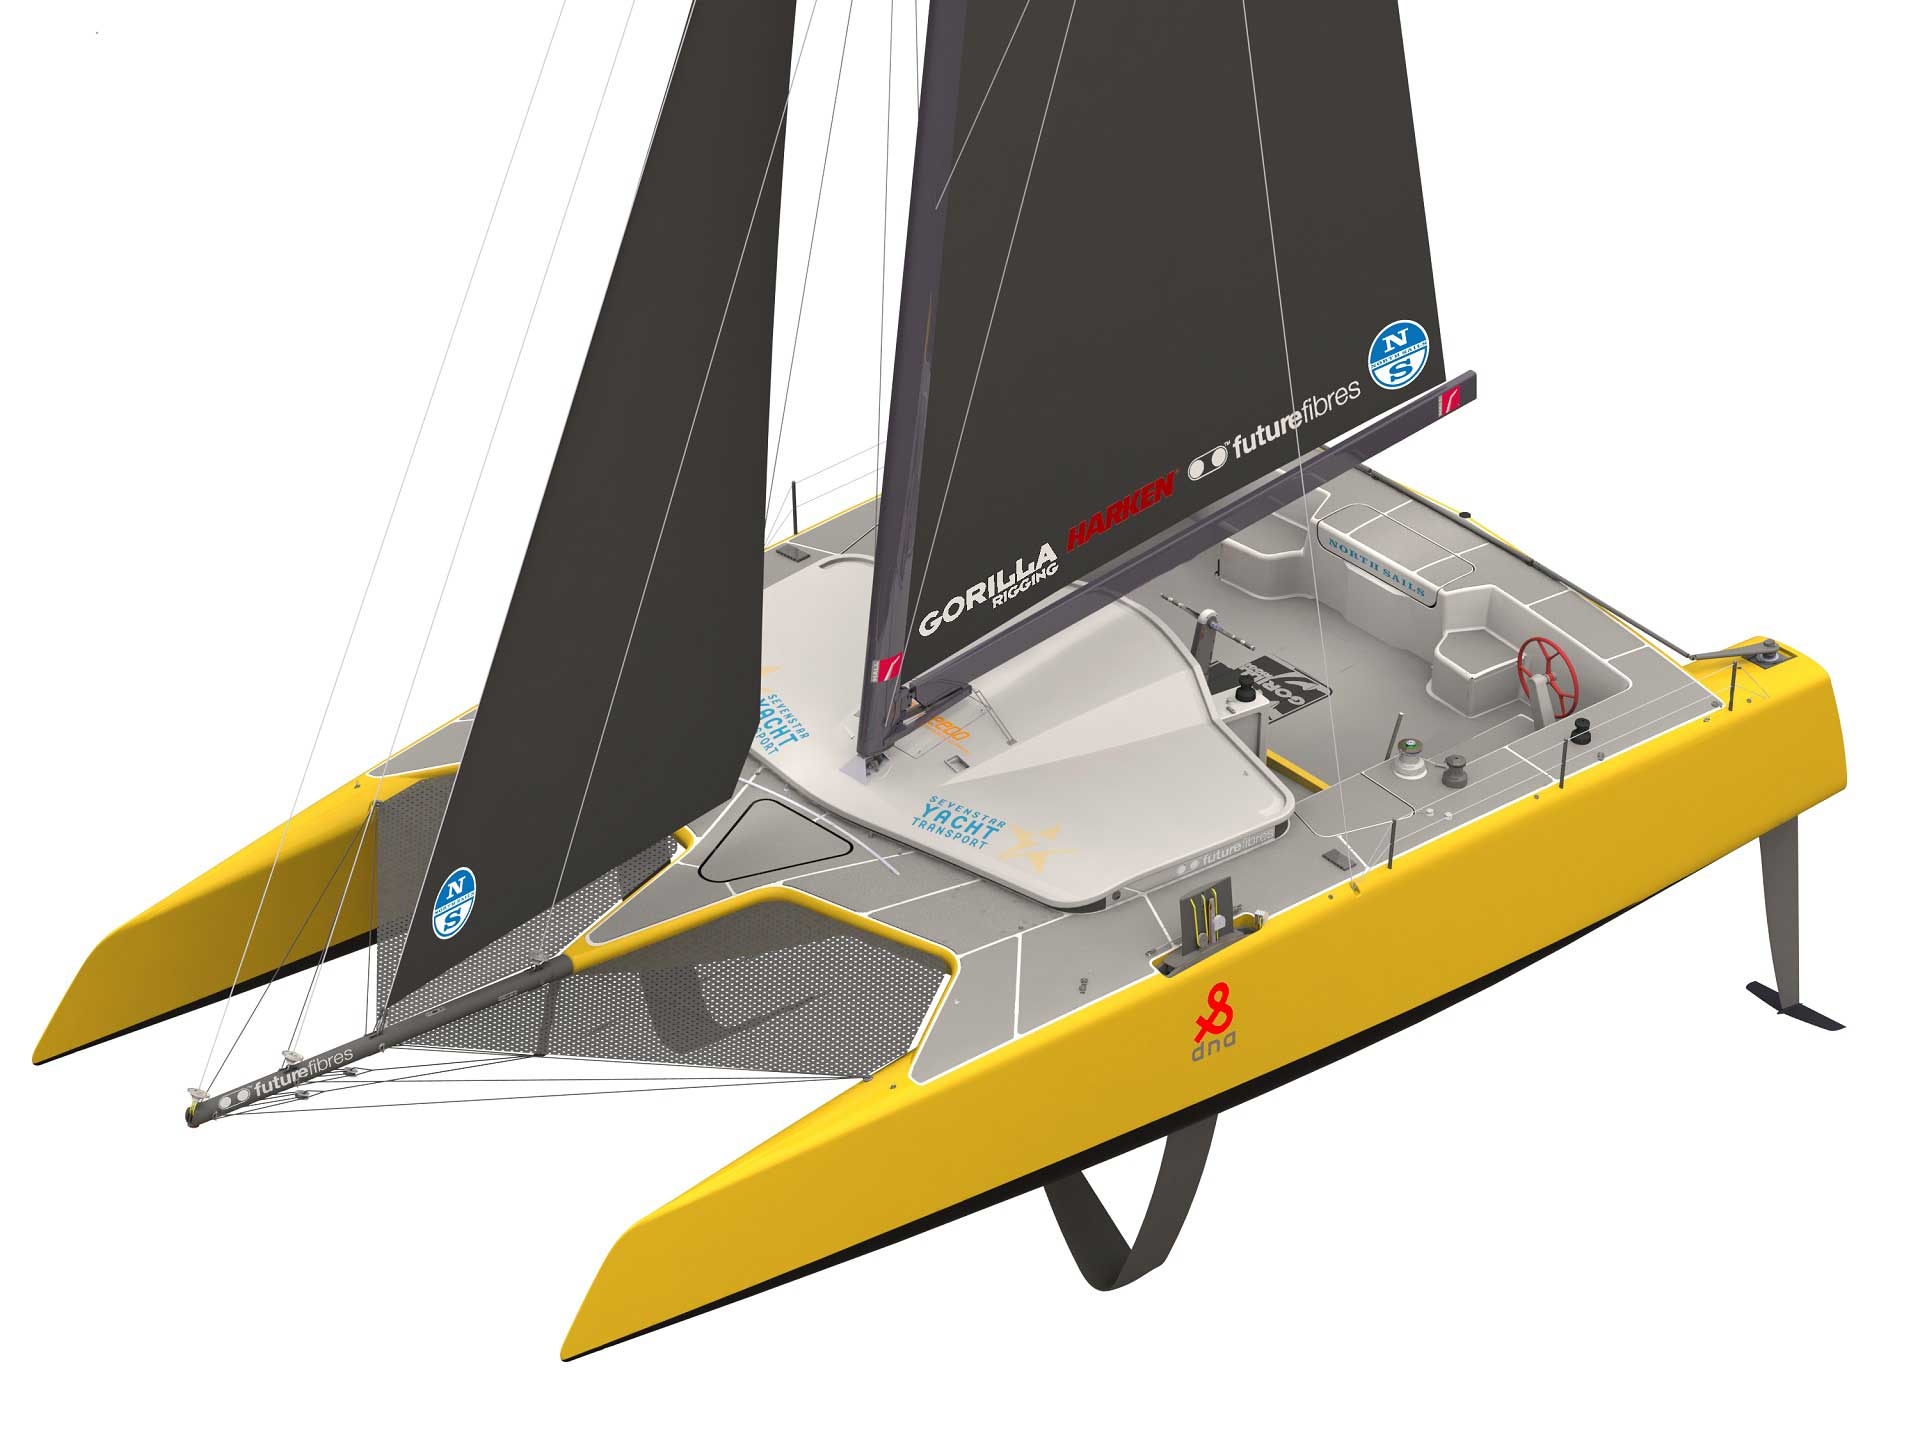 DNA-F4-foiling-catamaran-renderings-20160720-2